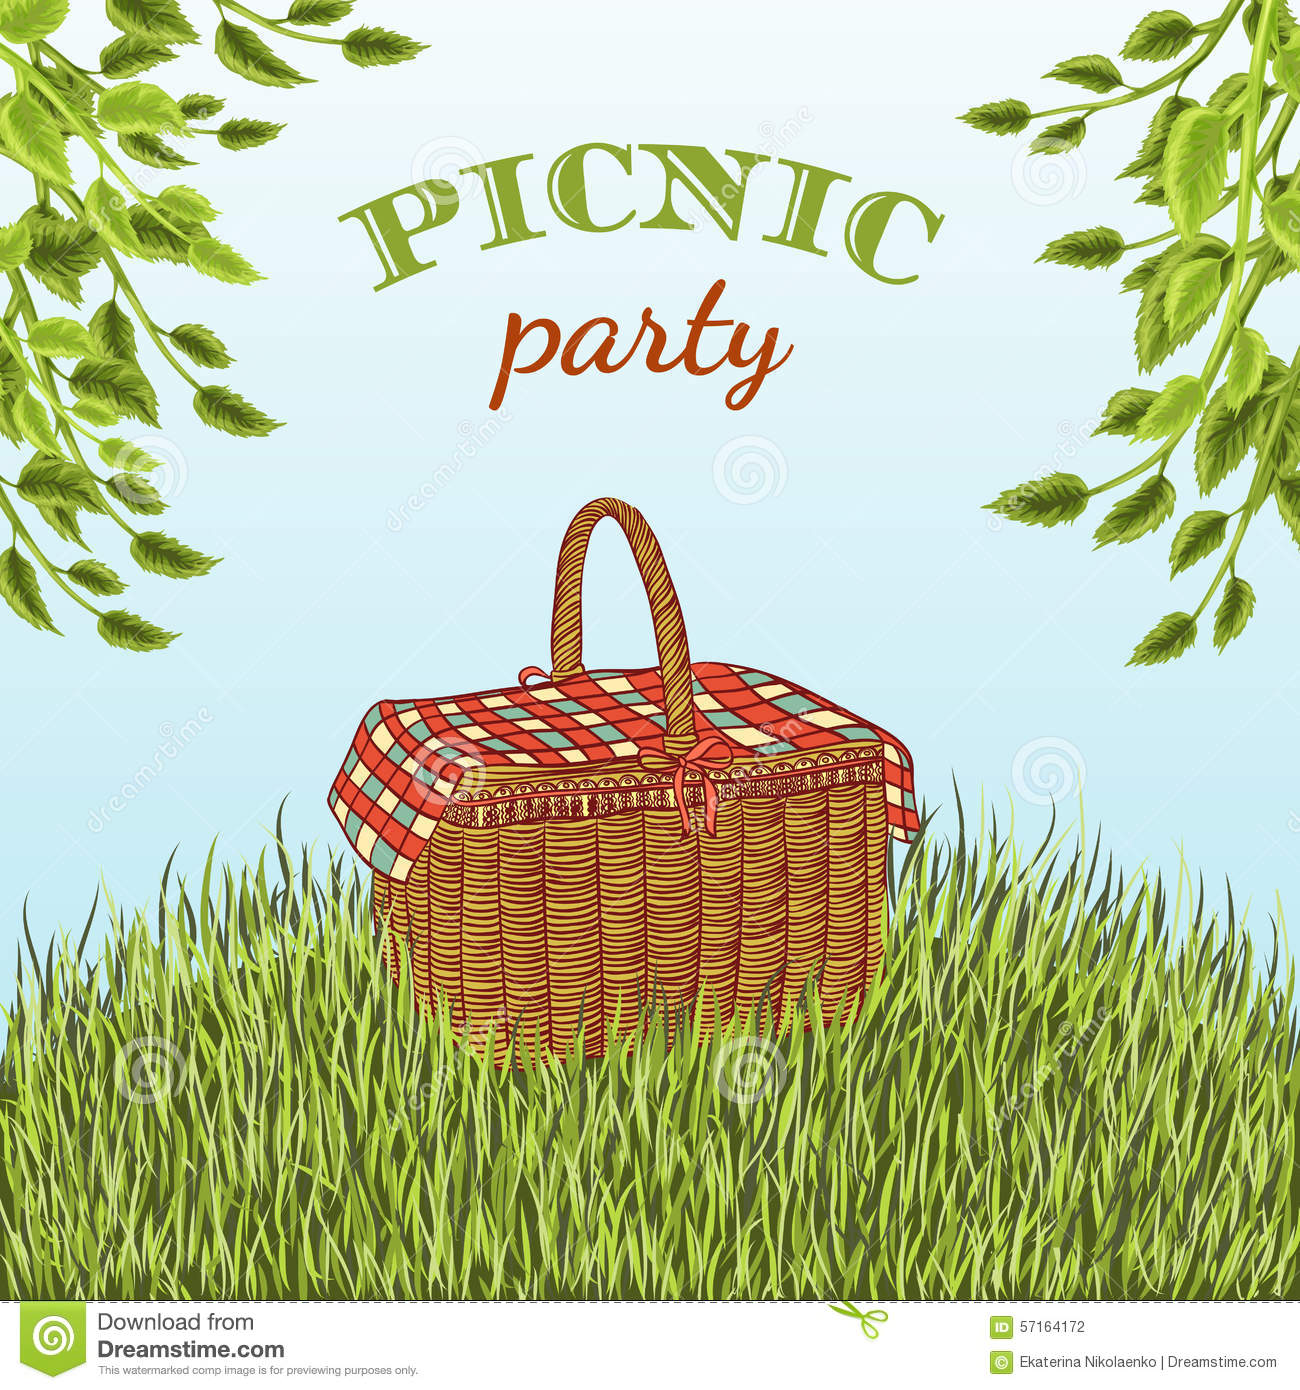 Picnic Party In Meadow With Picnic Basket And Tree